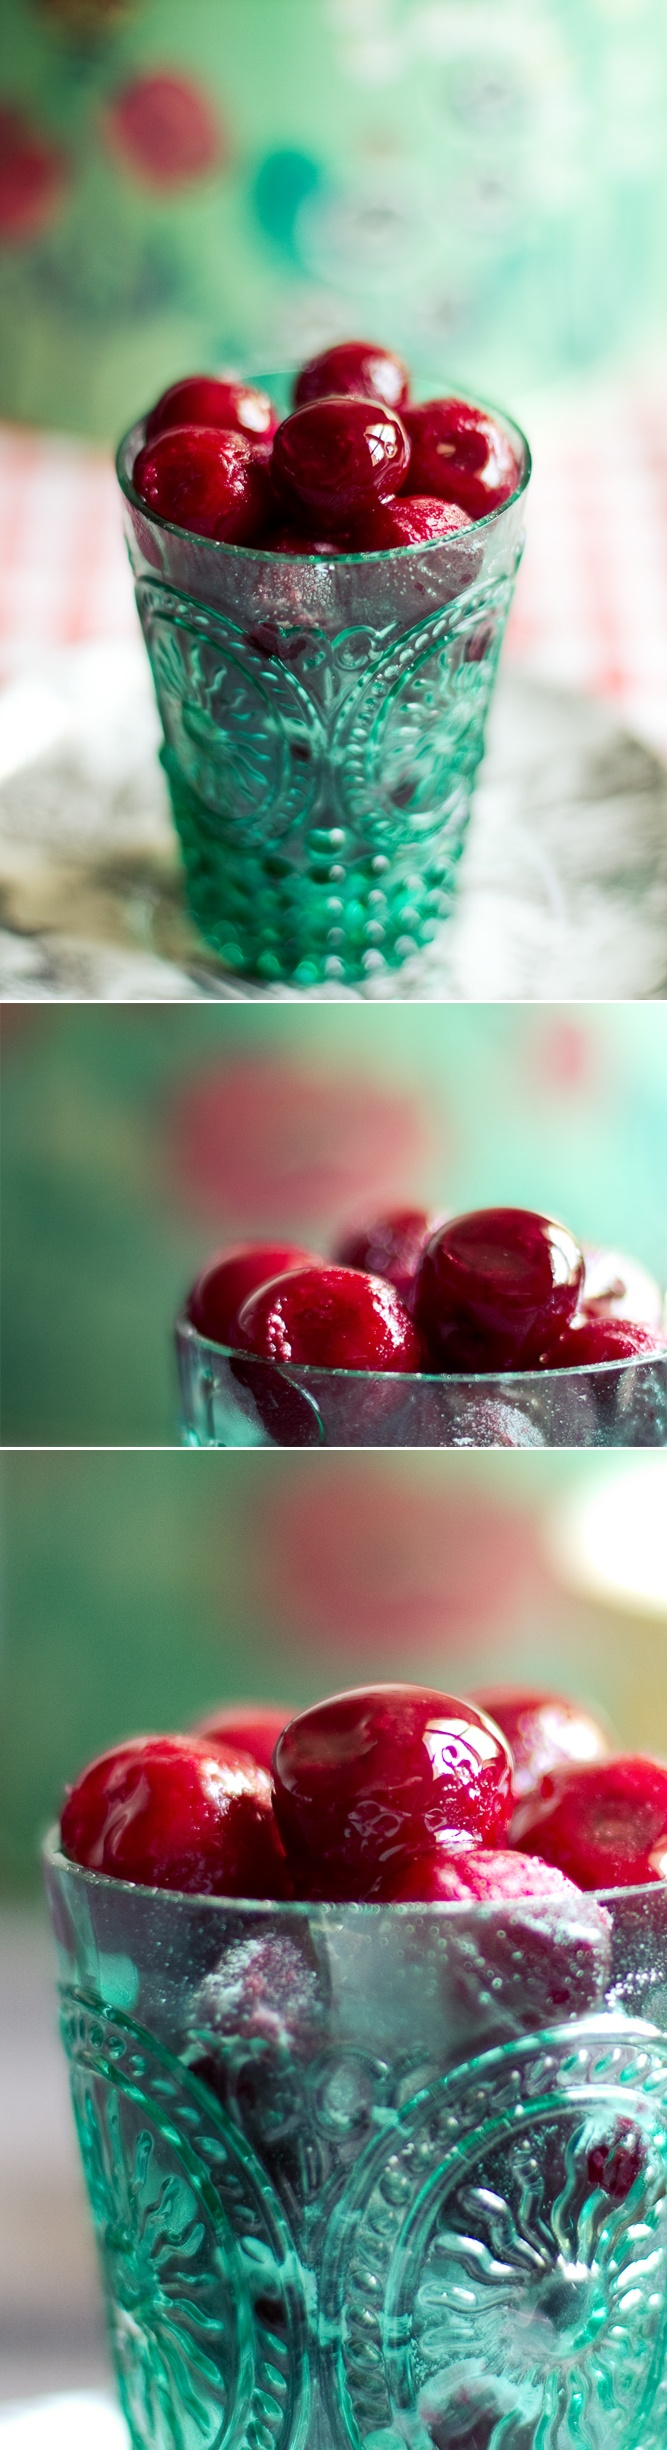 bing cherries in an aqua glass